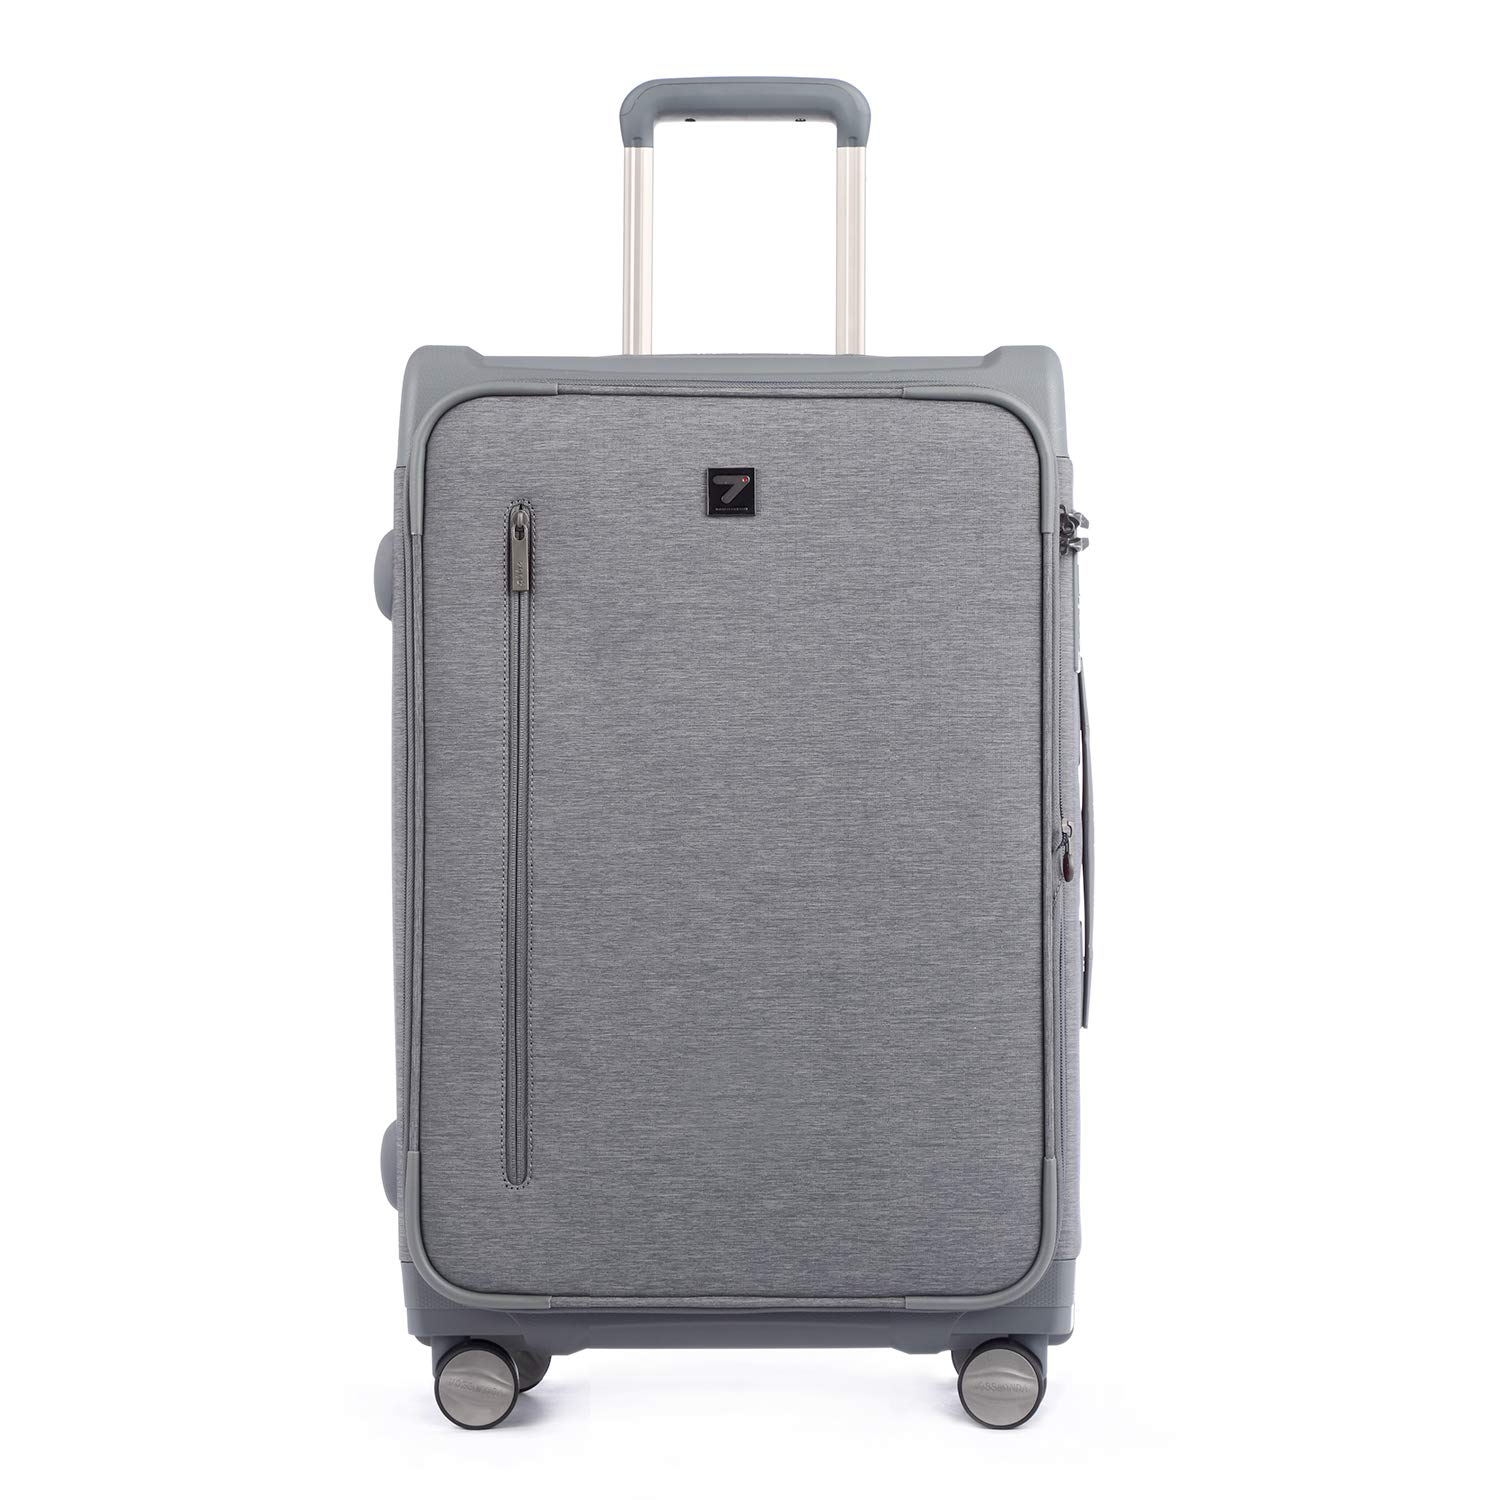 Paris Chic Style Best Checked Travel Luggage Soft Shell Lightweight Totell